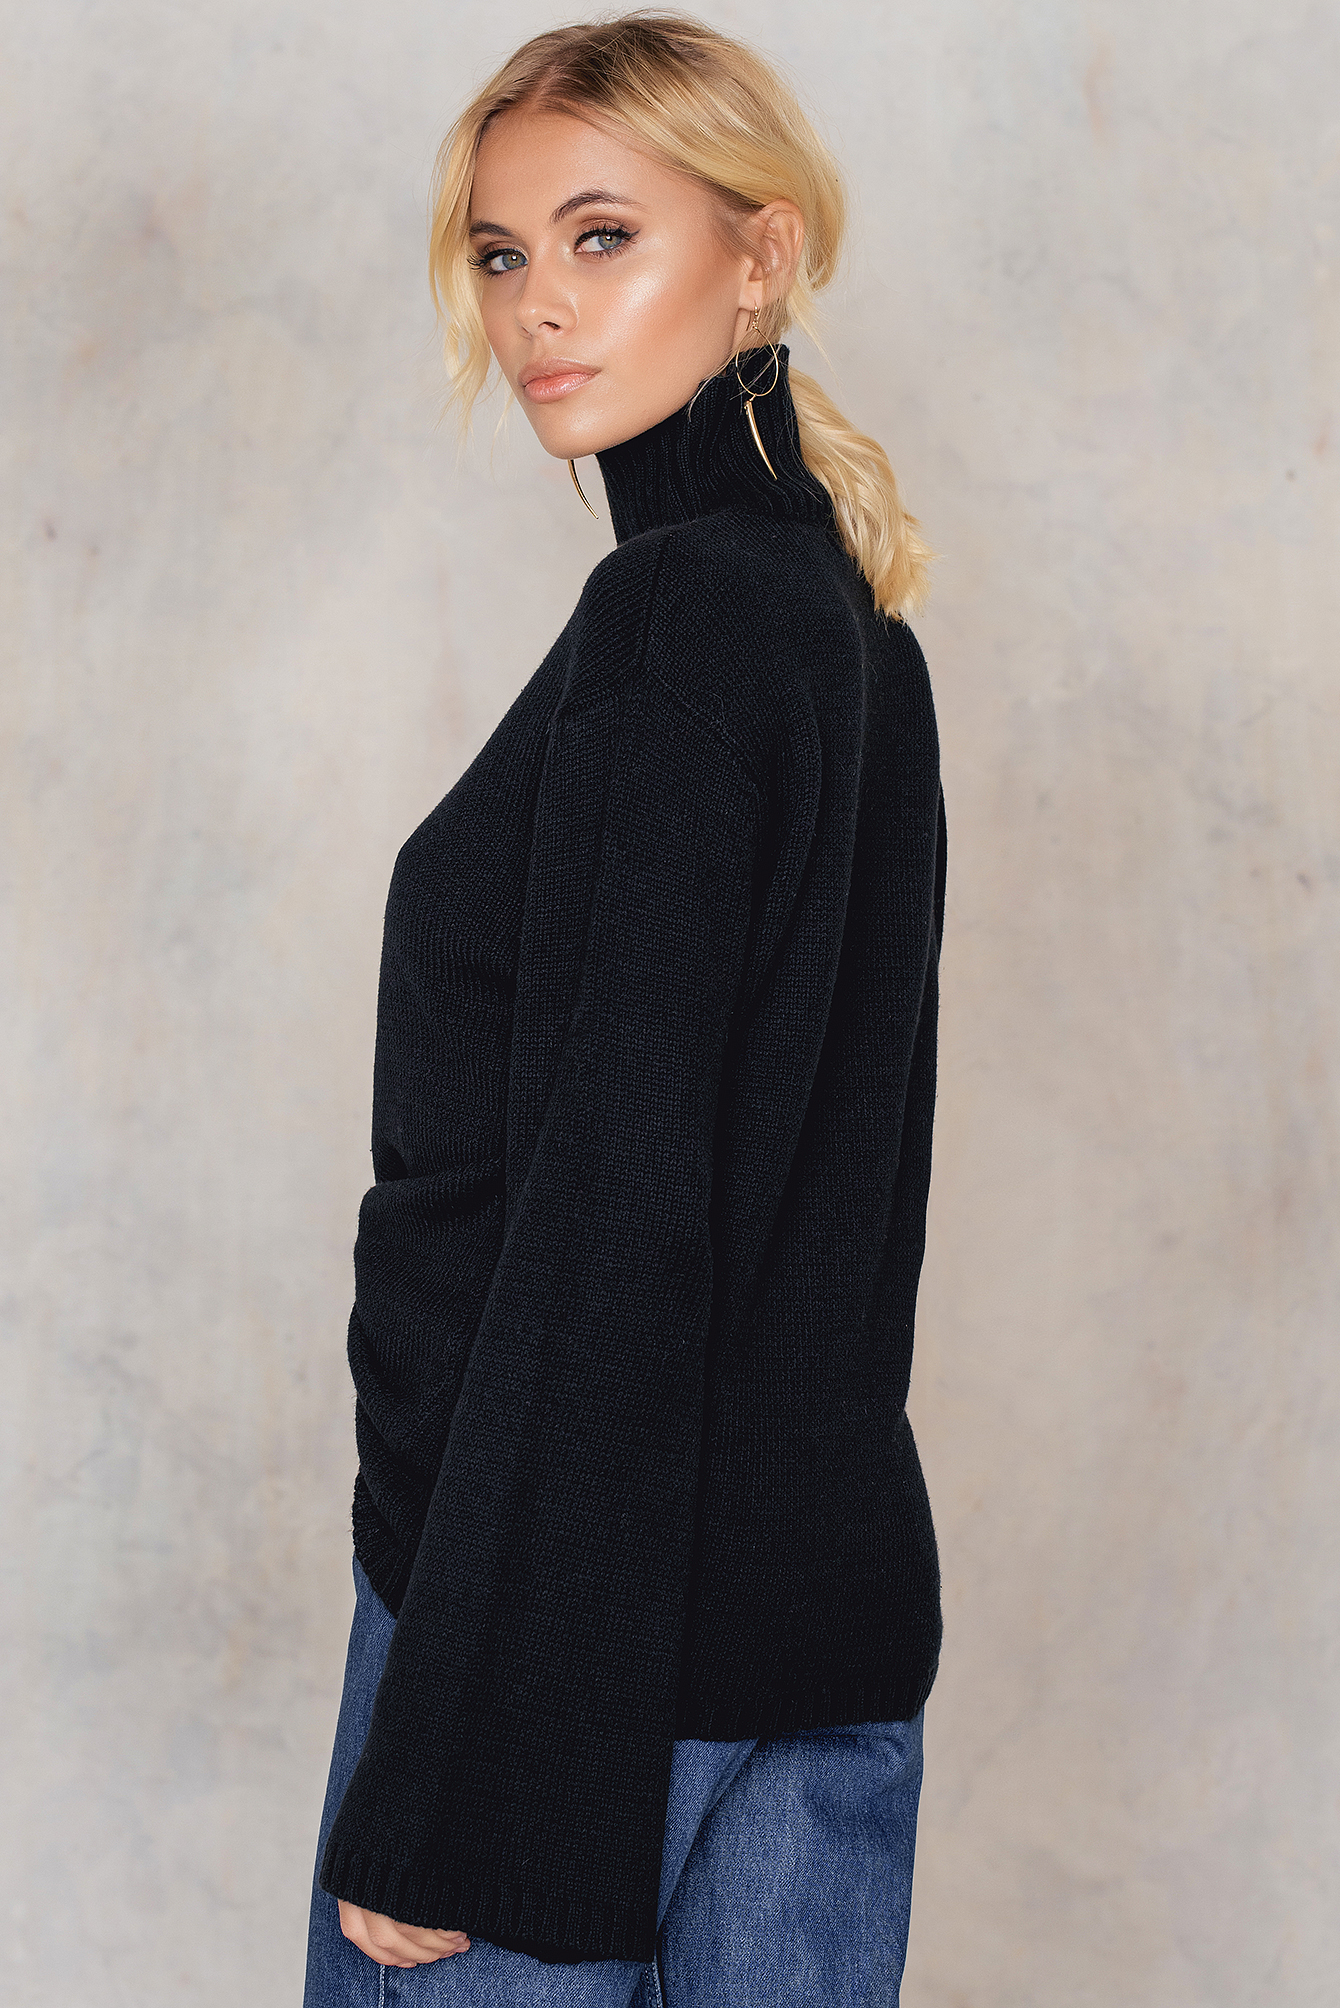 Black Wide Sleeve High Neck Sweater